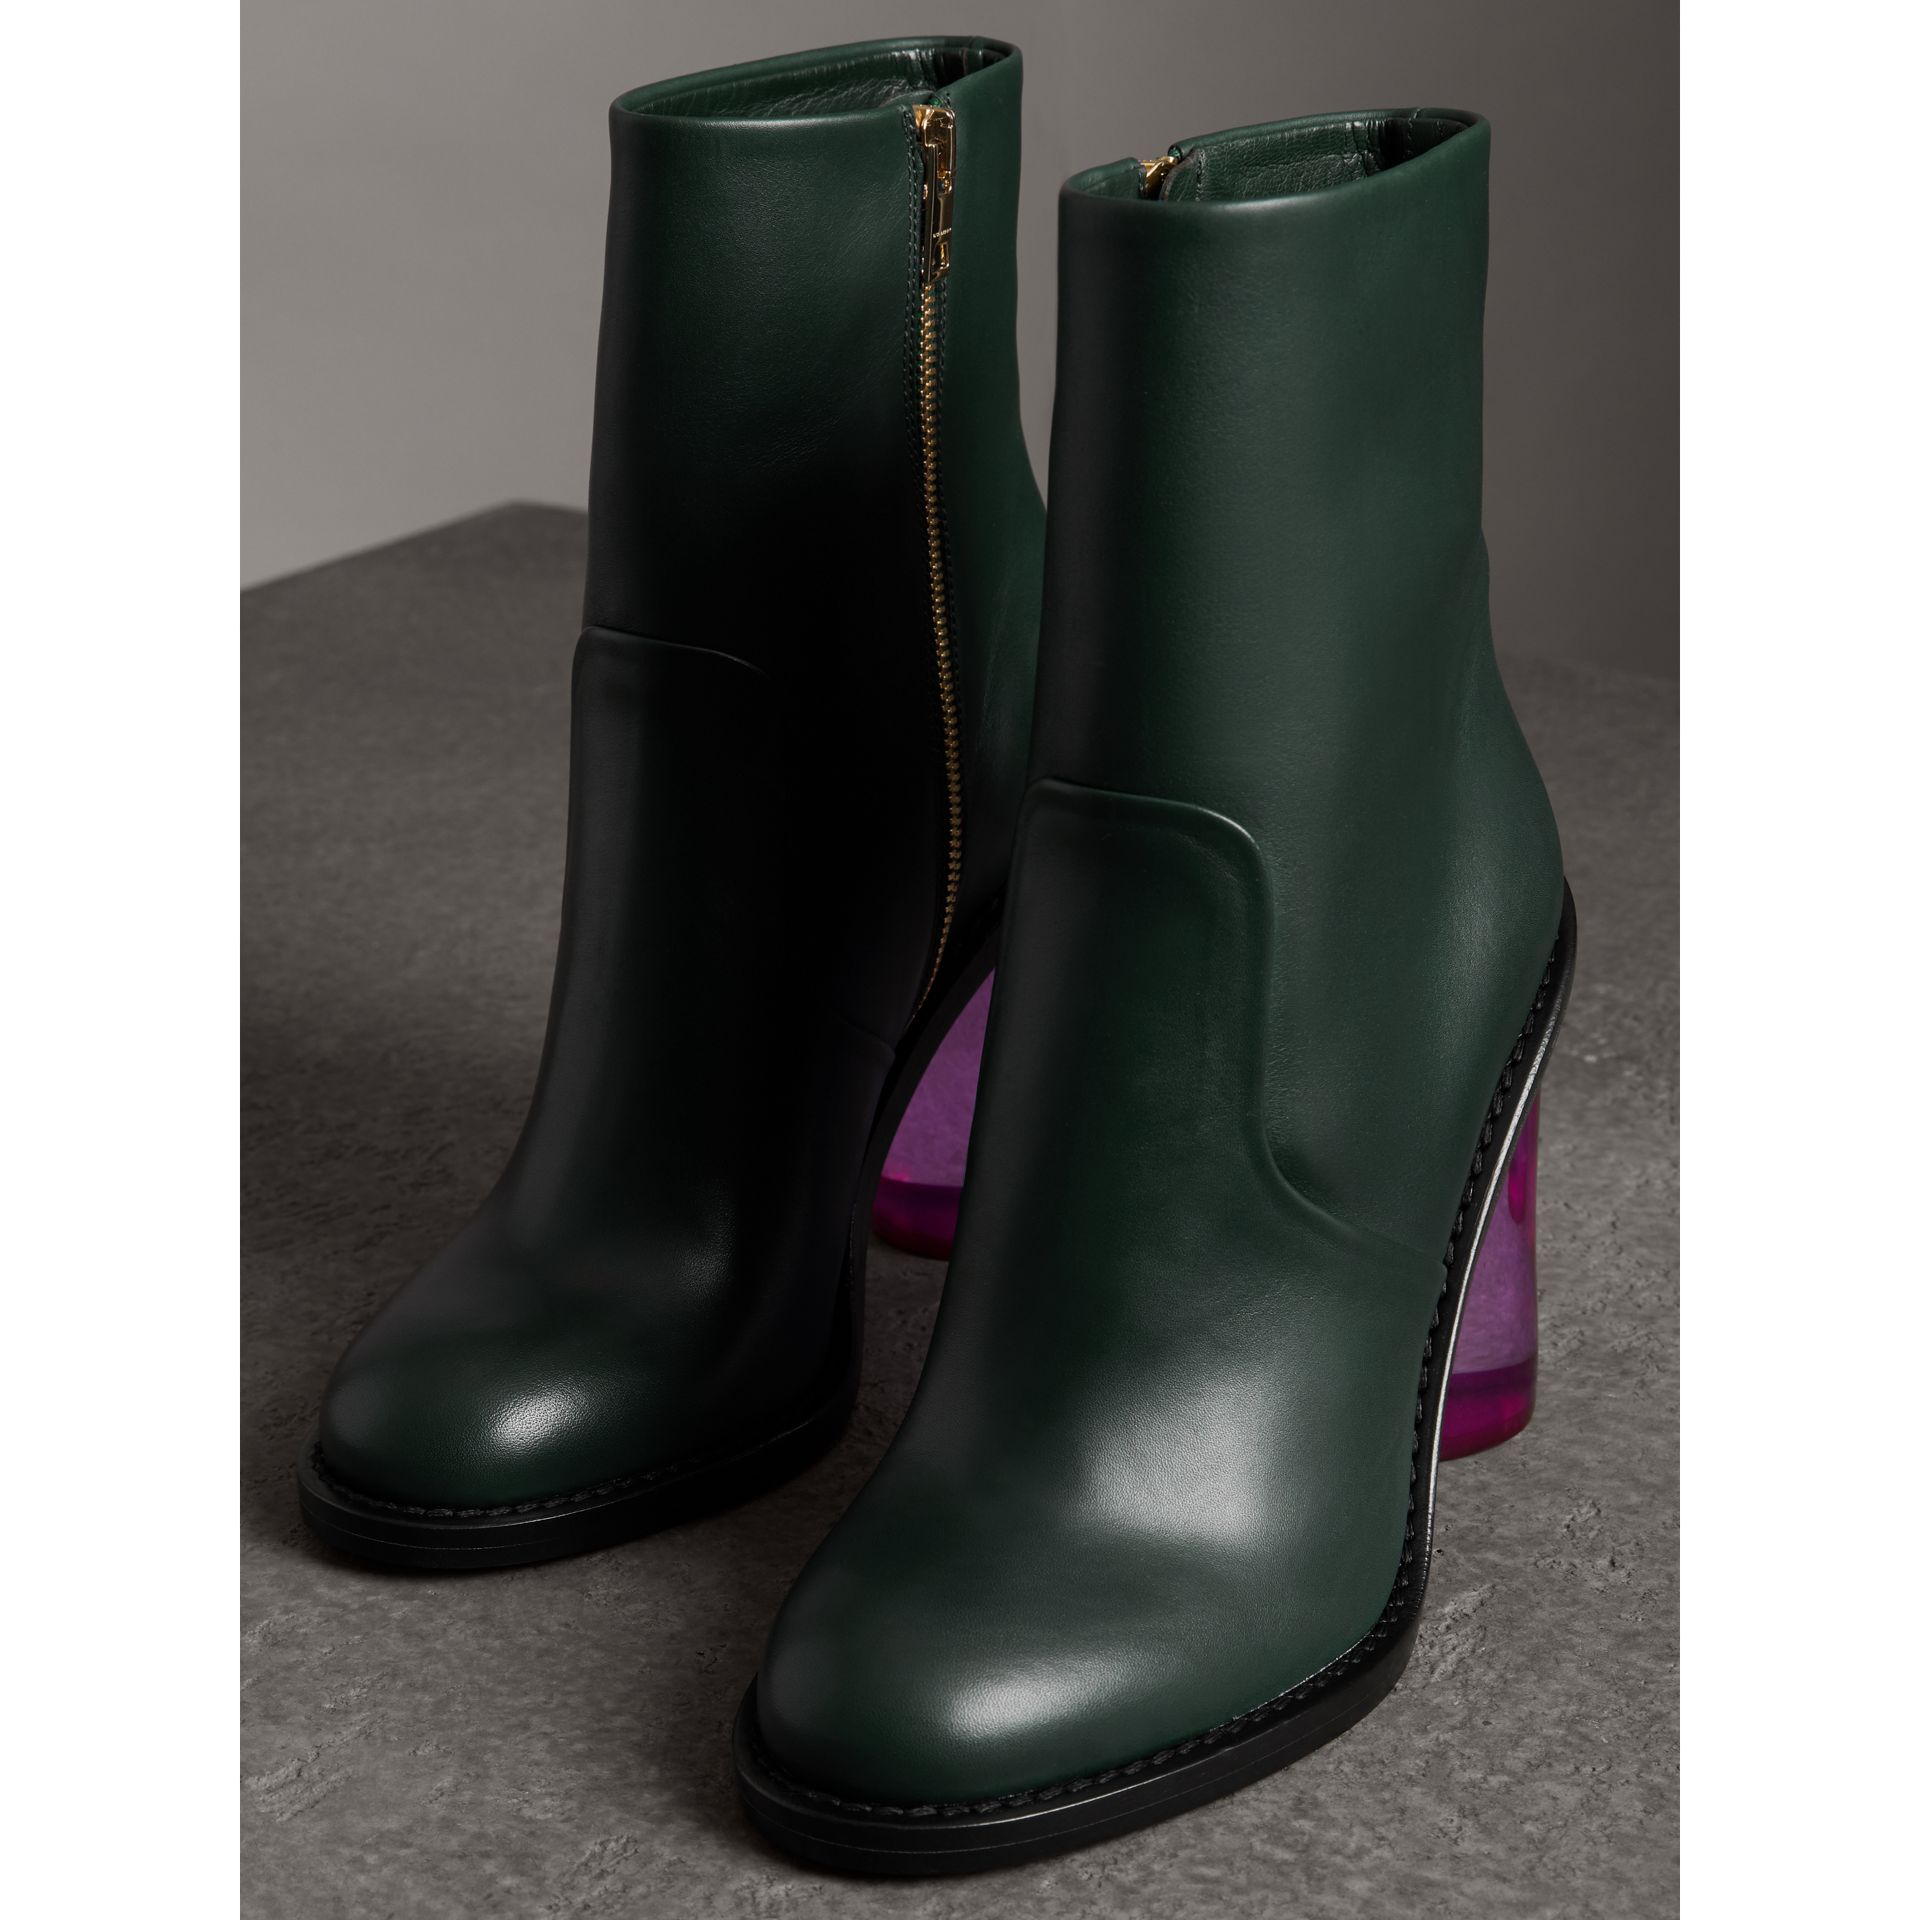 Bottines à talon bottier haut en cuir bicolore (Vert Forêt Sombre) - Femme | Burberry - photo de la galerie 4